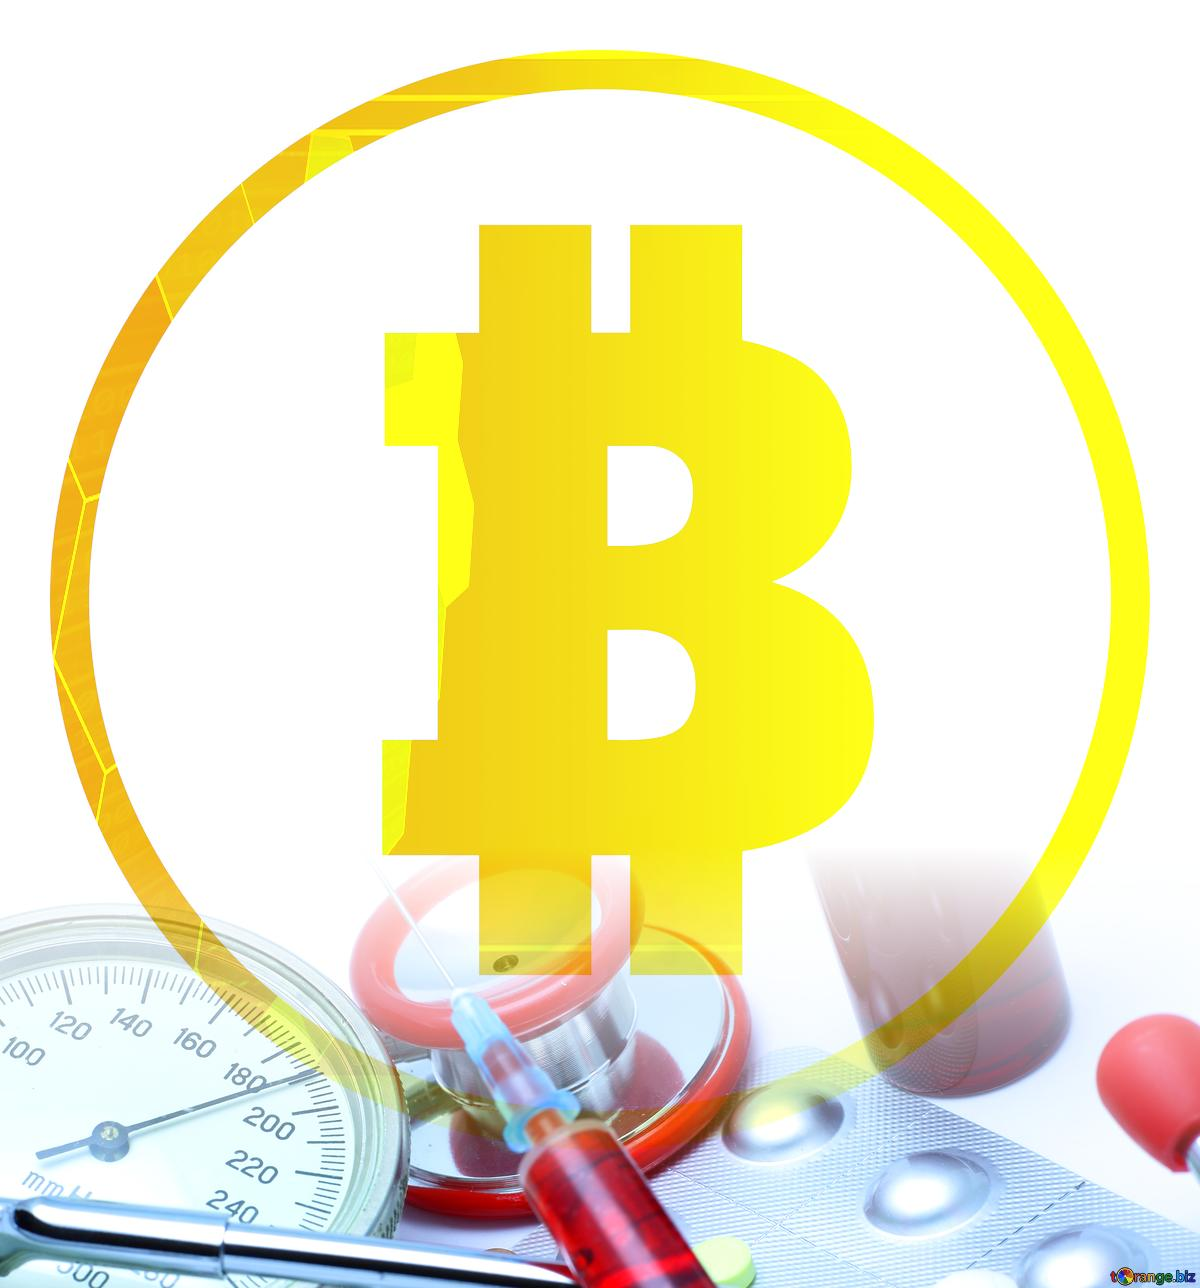 Free picture (Bitcoin medicine) from https://torange.biz/fx/overlay-tech-business-information-concept-template-194812